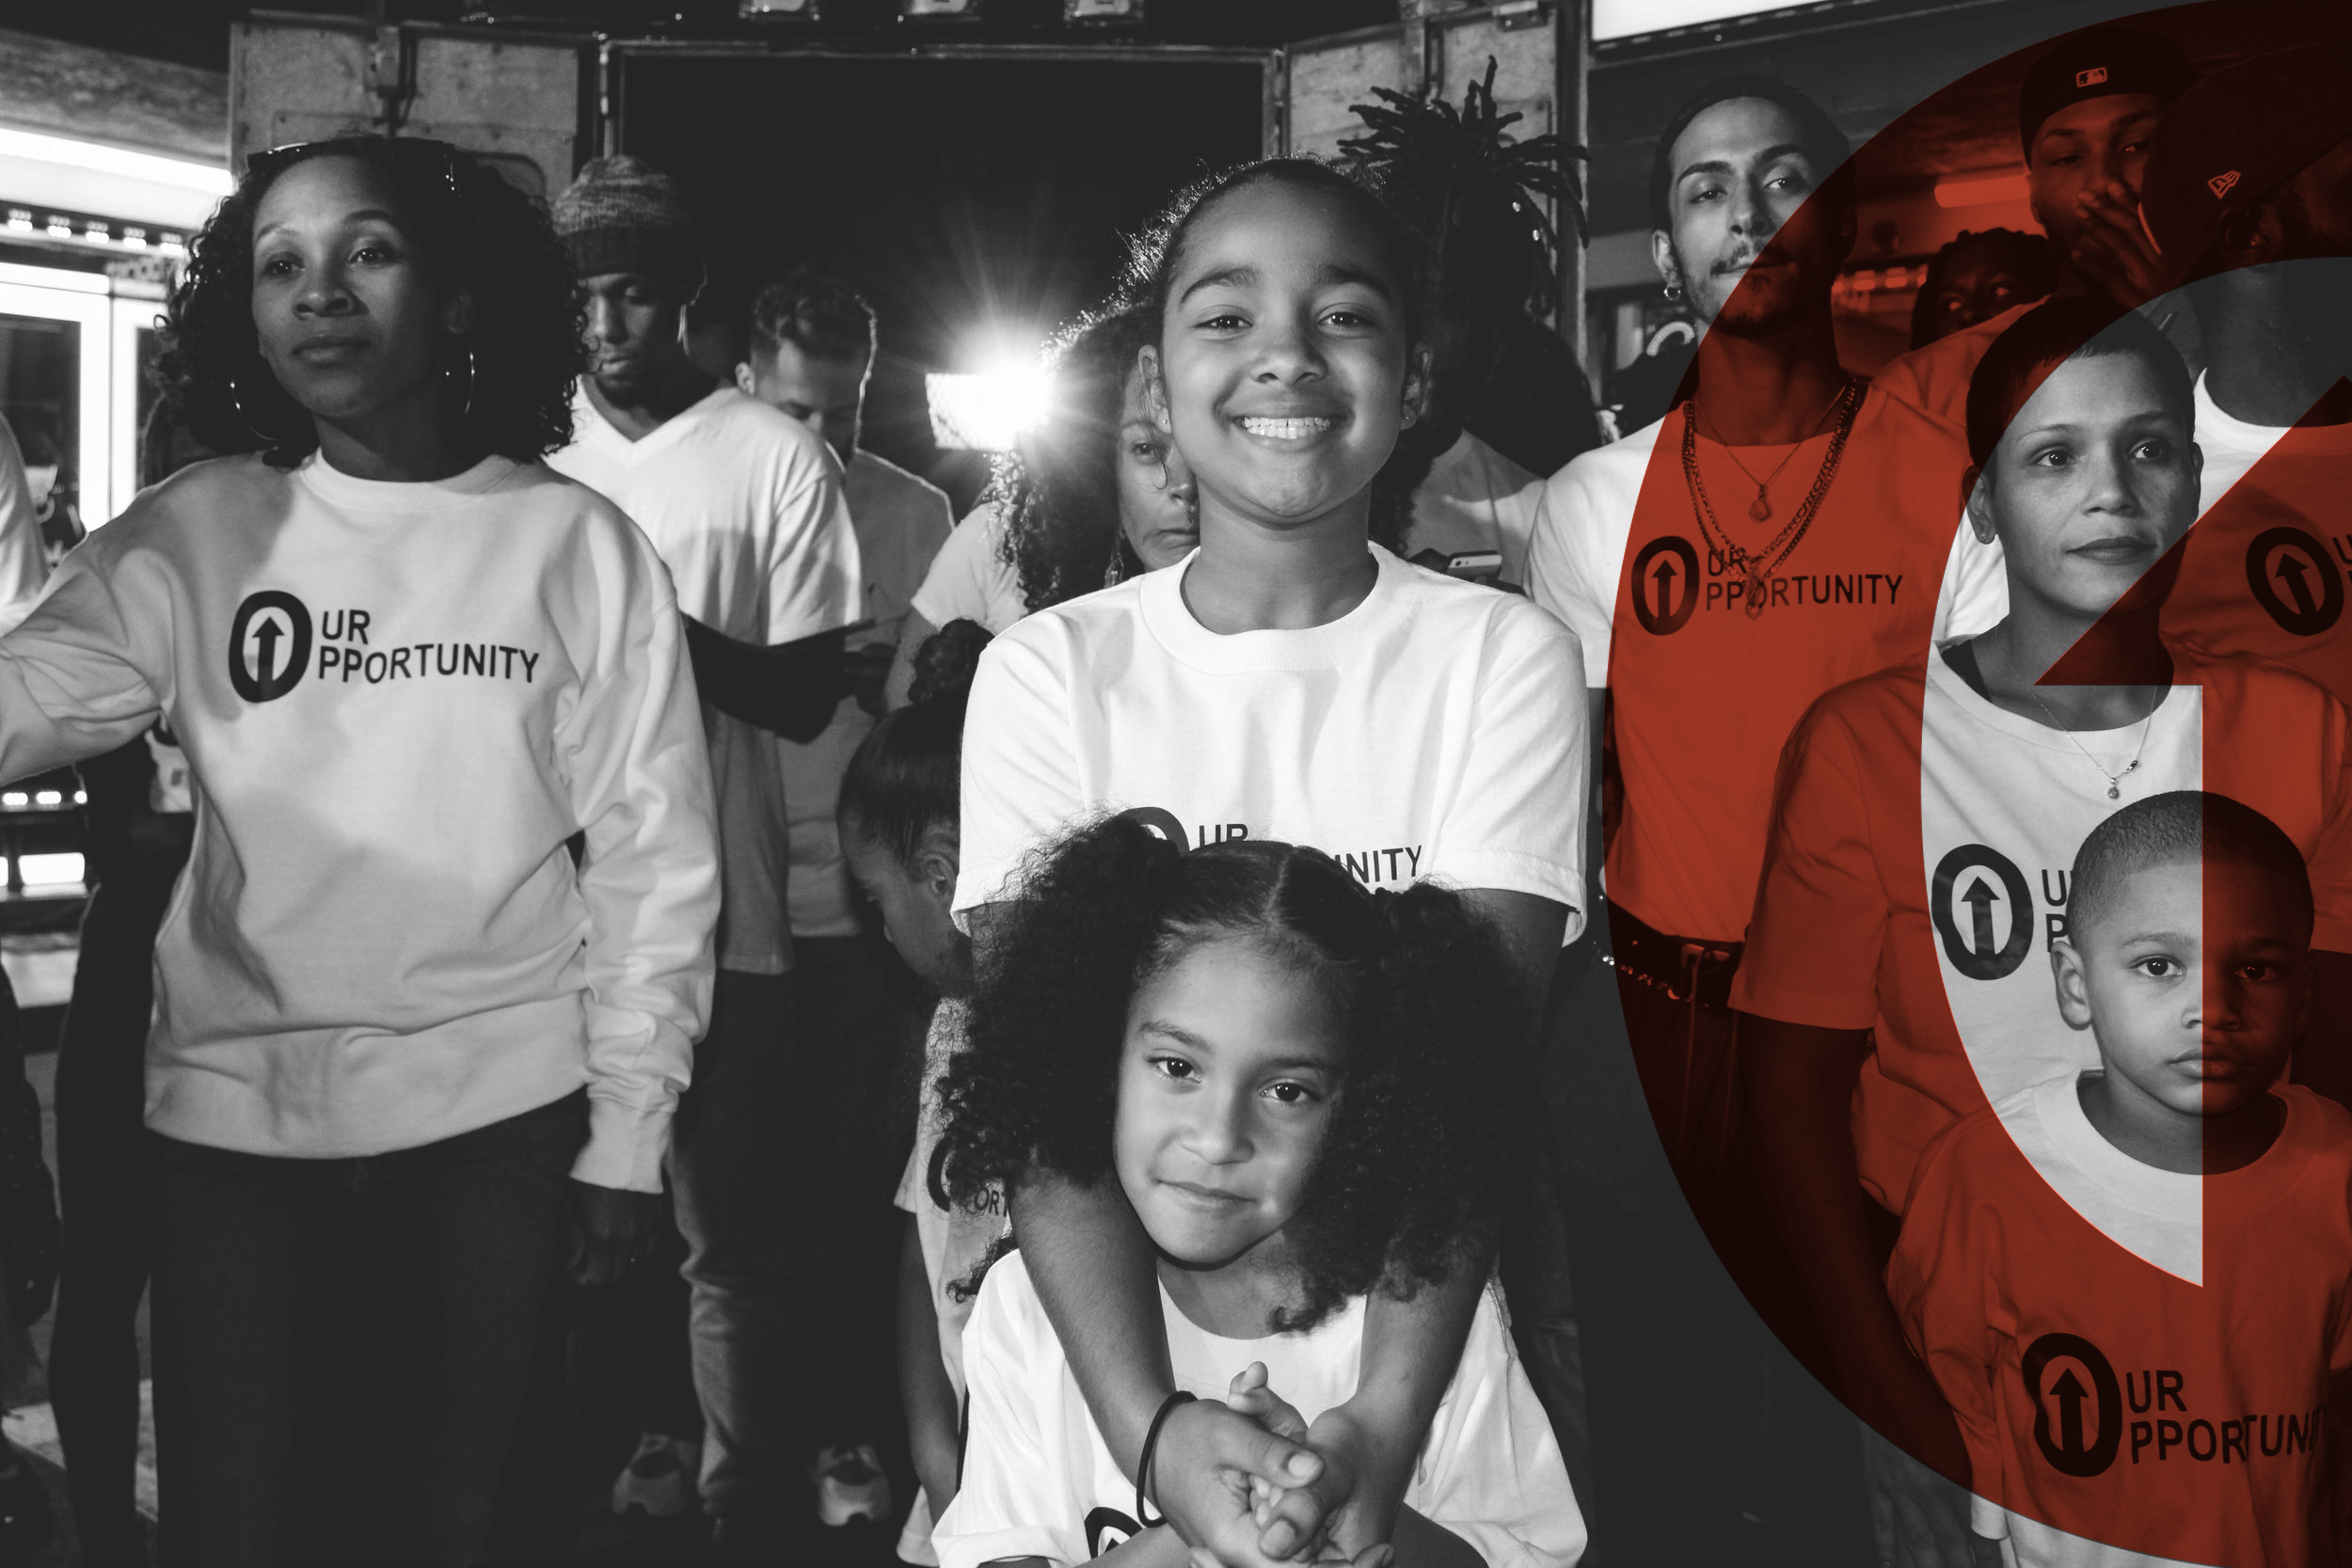 OUR MISSION - #OurOpportunity is now. We are a powerful, community-aligned coalition, devoted to restoring hope in forgotten communities across inner-city America. Our mission is to use private investment as a tool to rewrite the narrative of our neighborhoods.